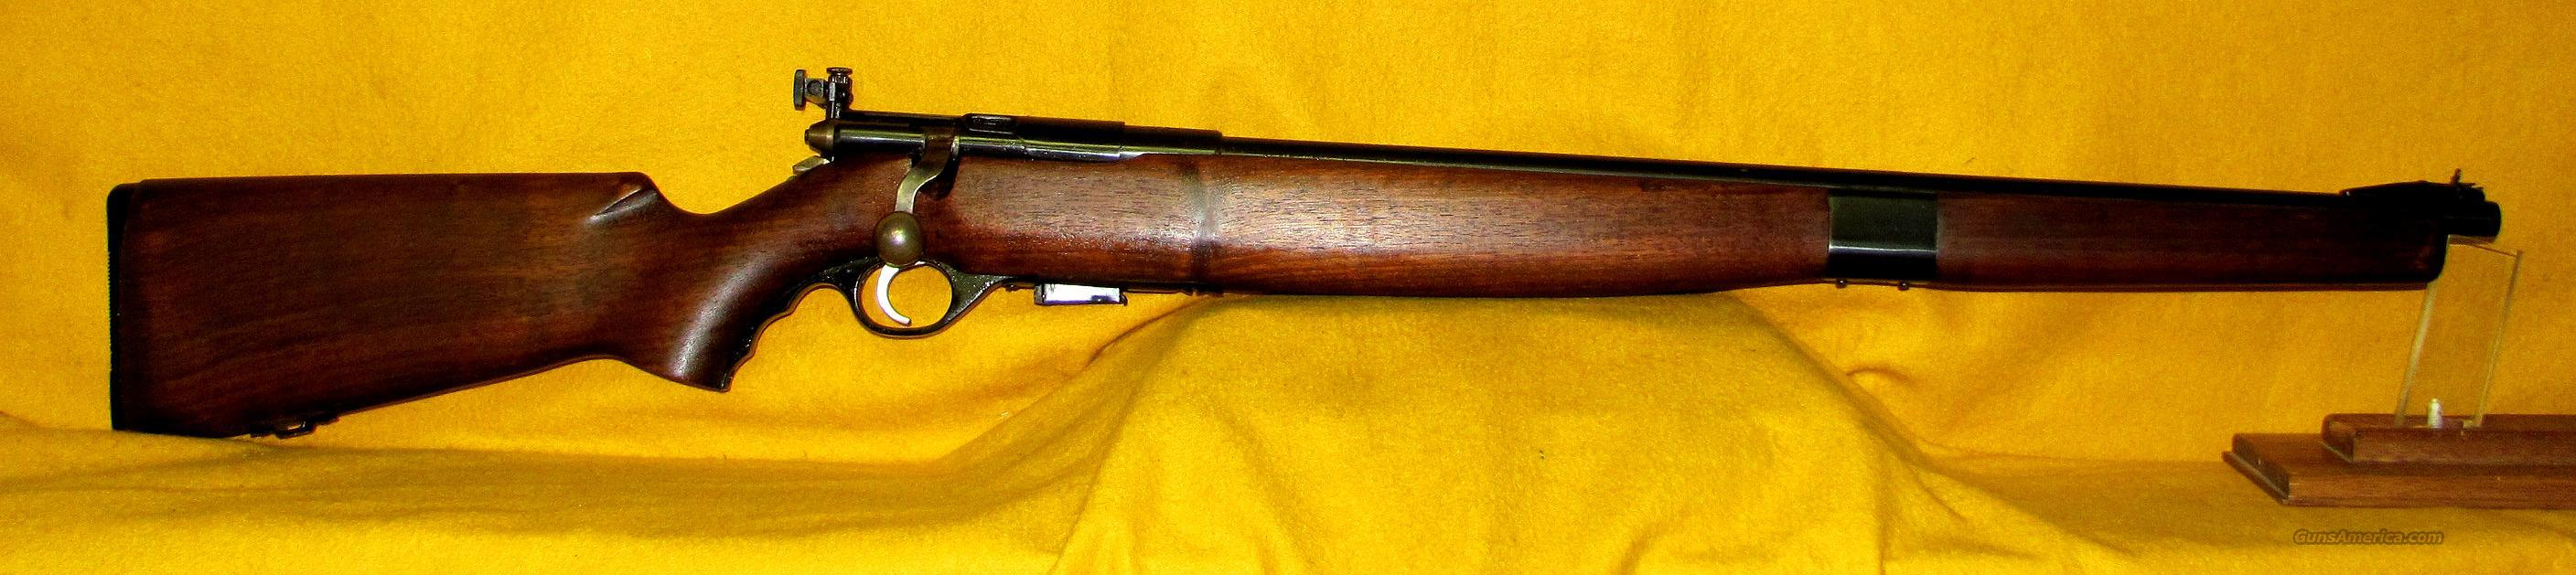 MOSSBERG 42 MB ( US PROPERTY MARKED )  Guns > Rifles > Mossberg Rifles > Other Bolt Action